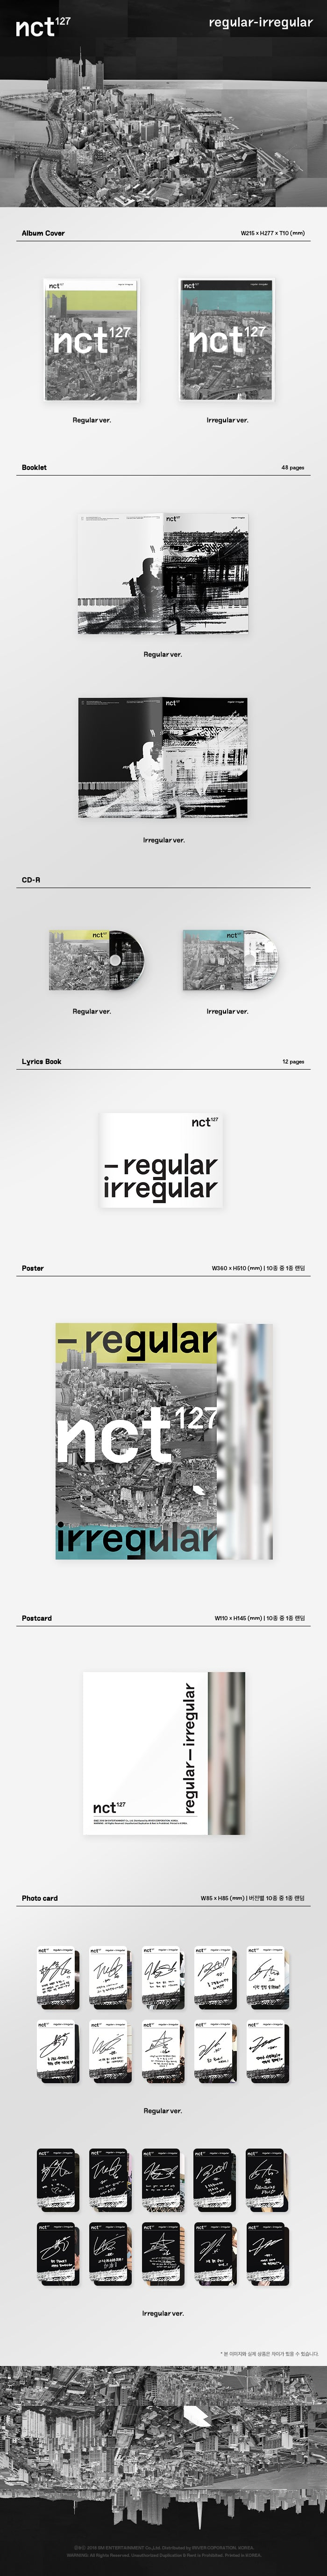 NCT 127 Irregular Regular Version KPOP Album at SOKOLLAB